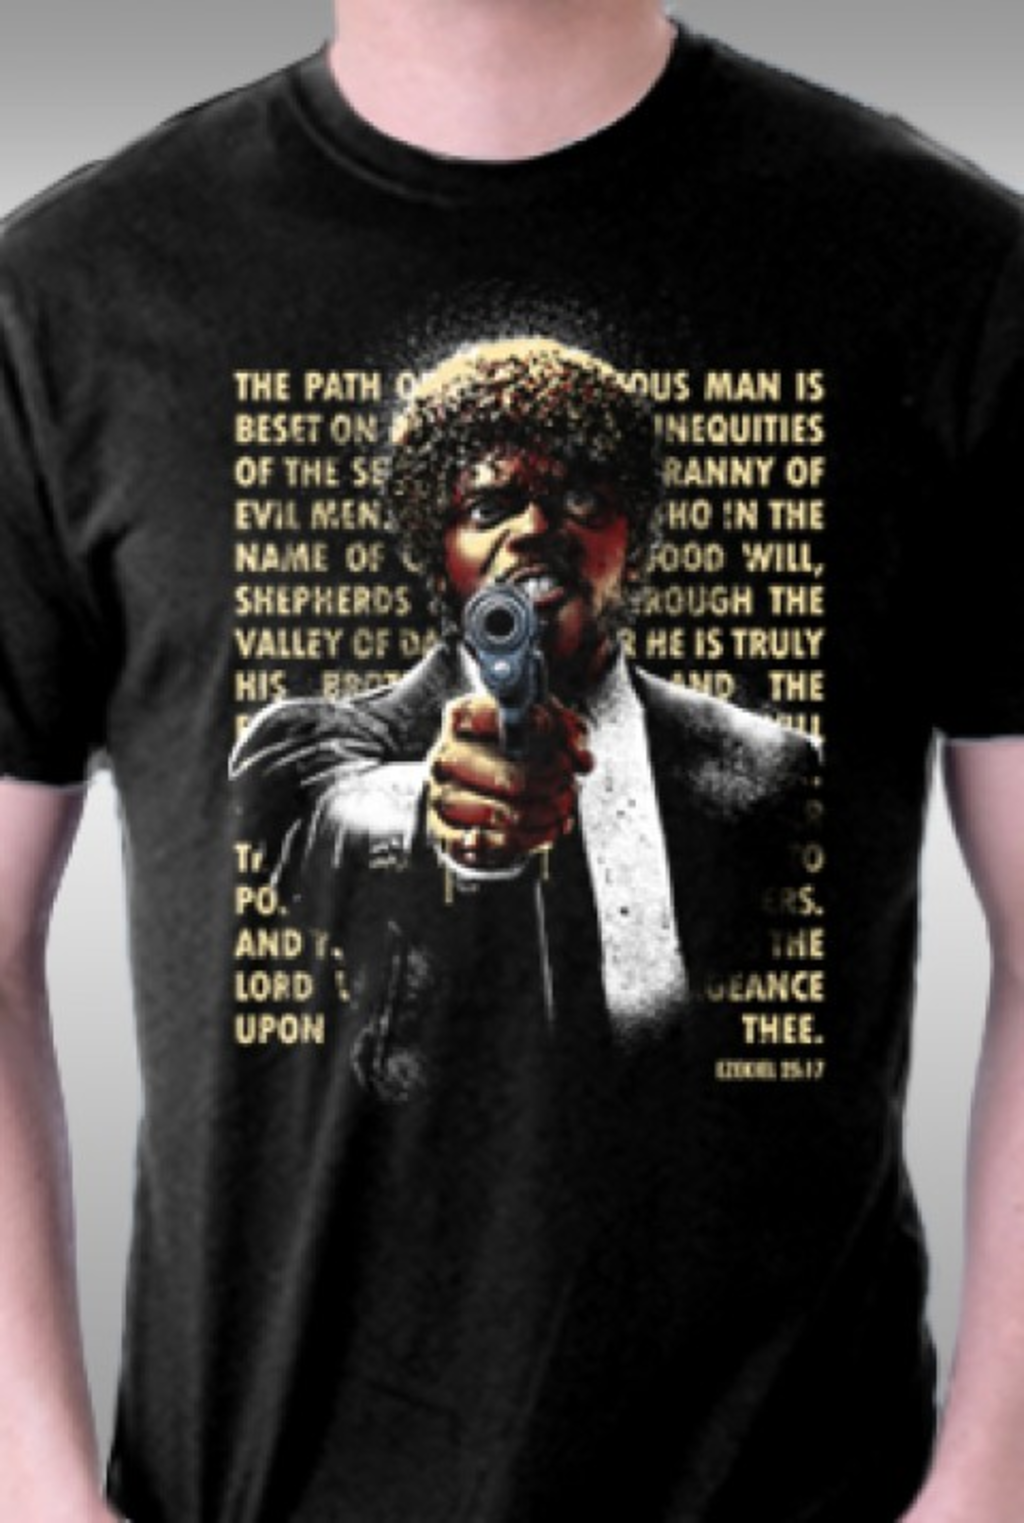 TeeFury: The Path of the Righteous Man